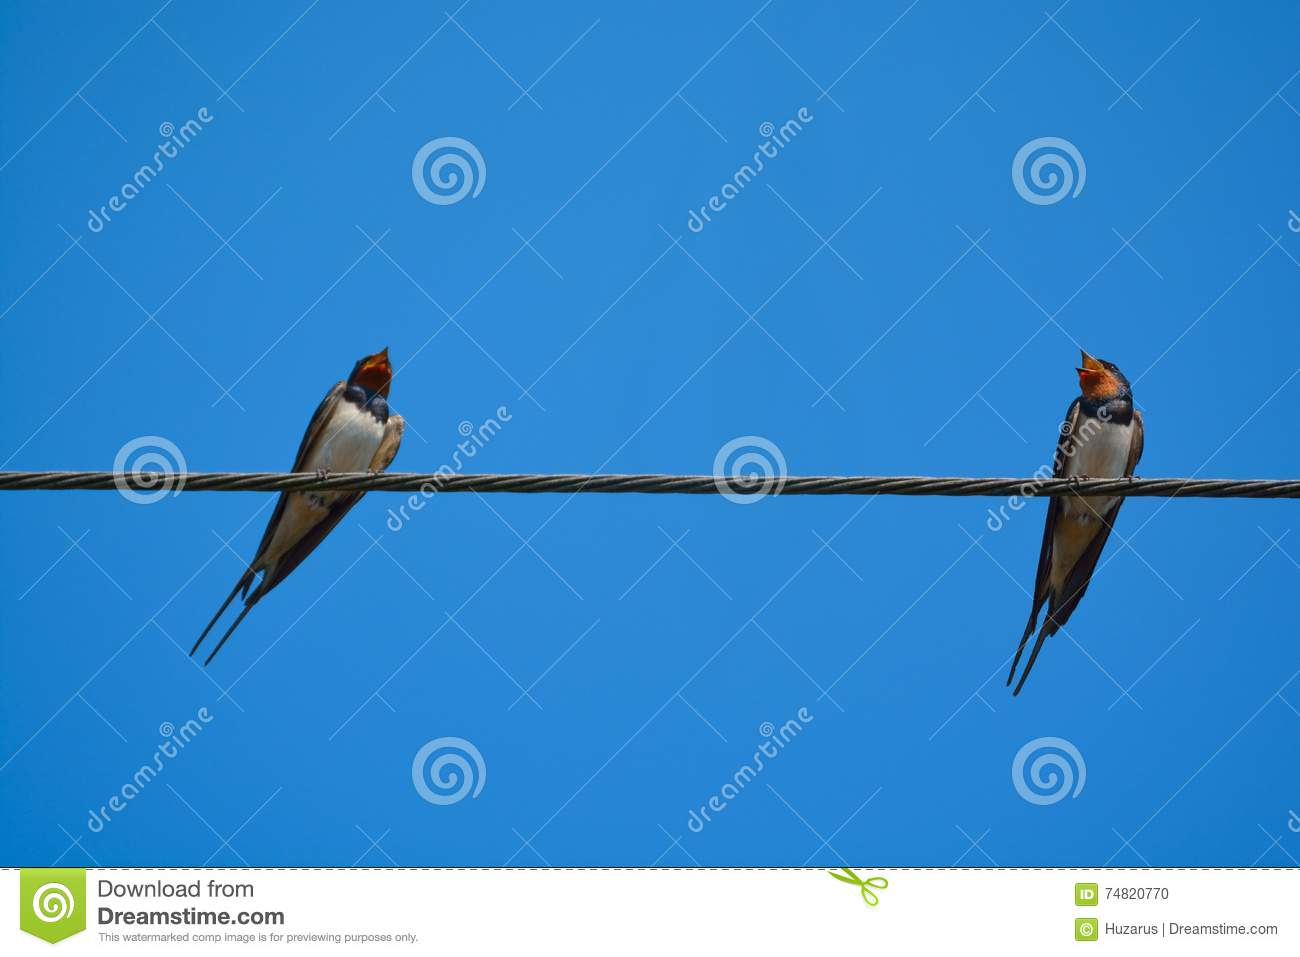 Swallow birds on wire.